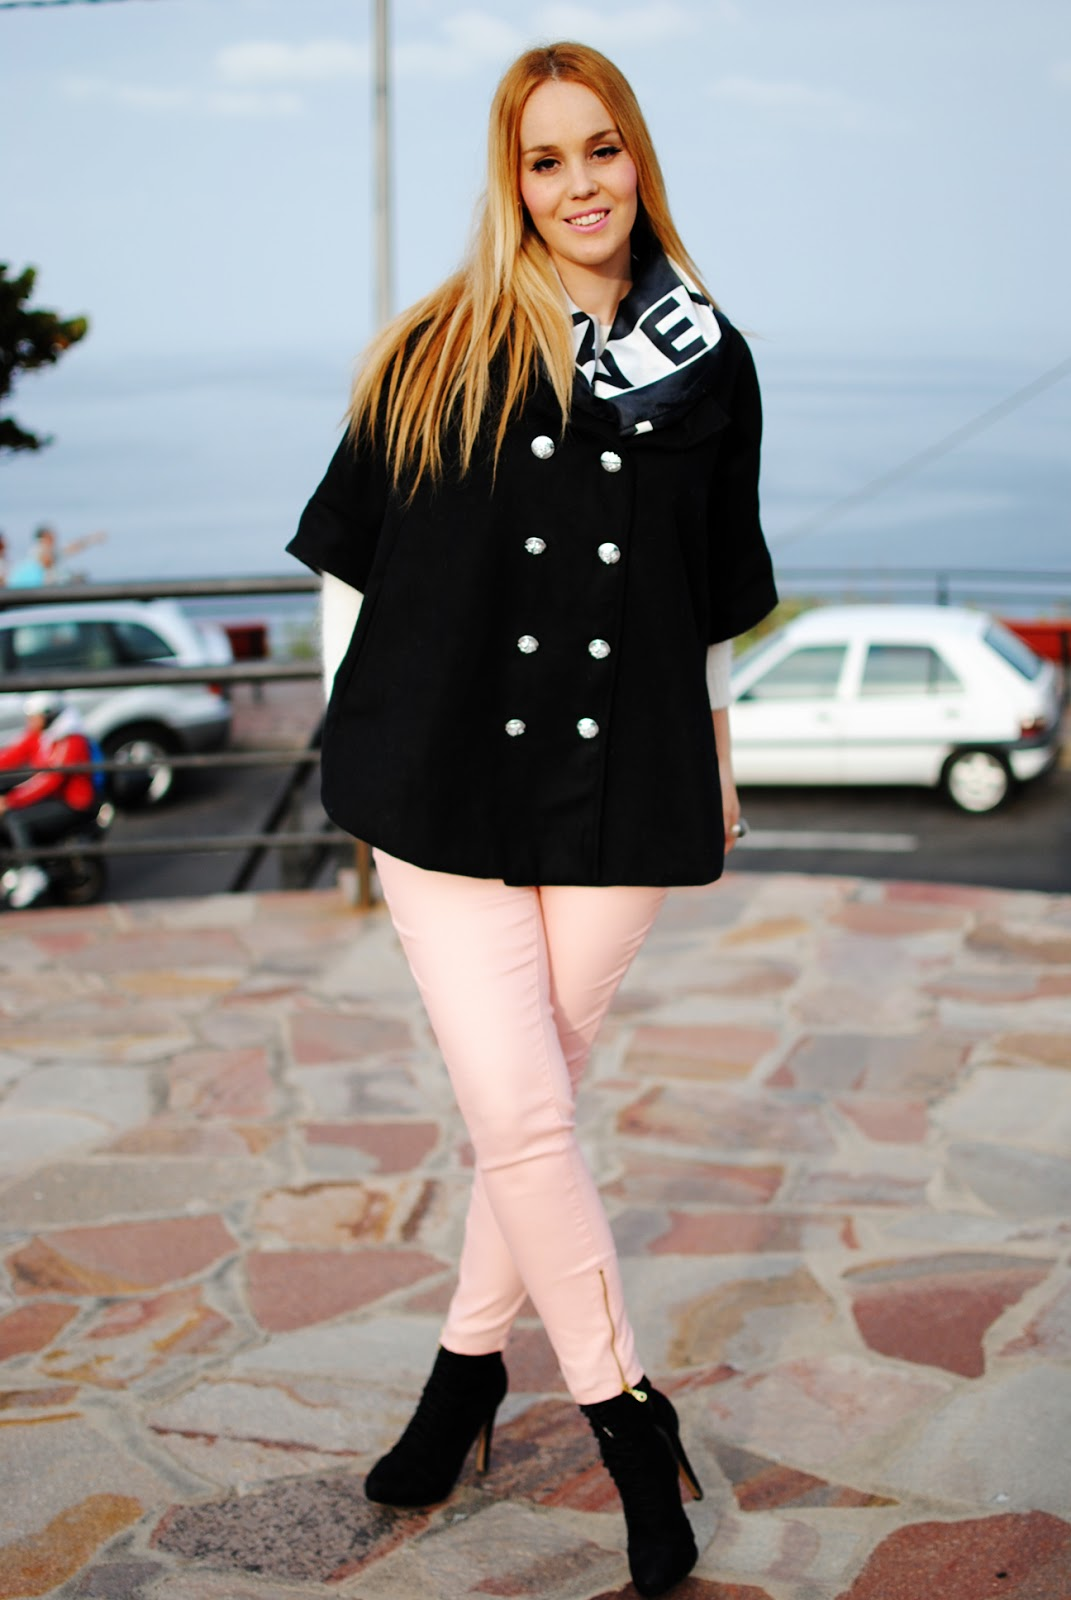 Nery hdez, chanel, cape, thboxes bloggers